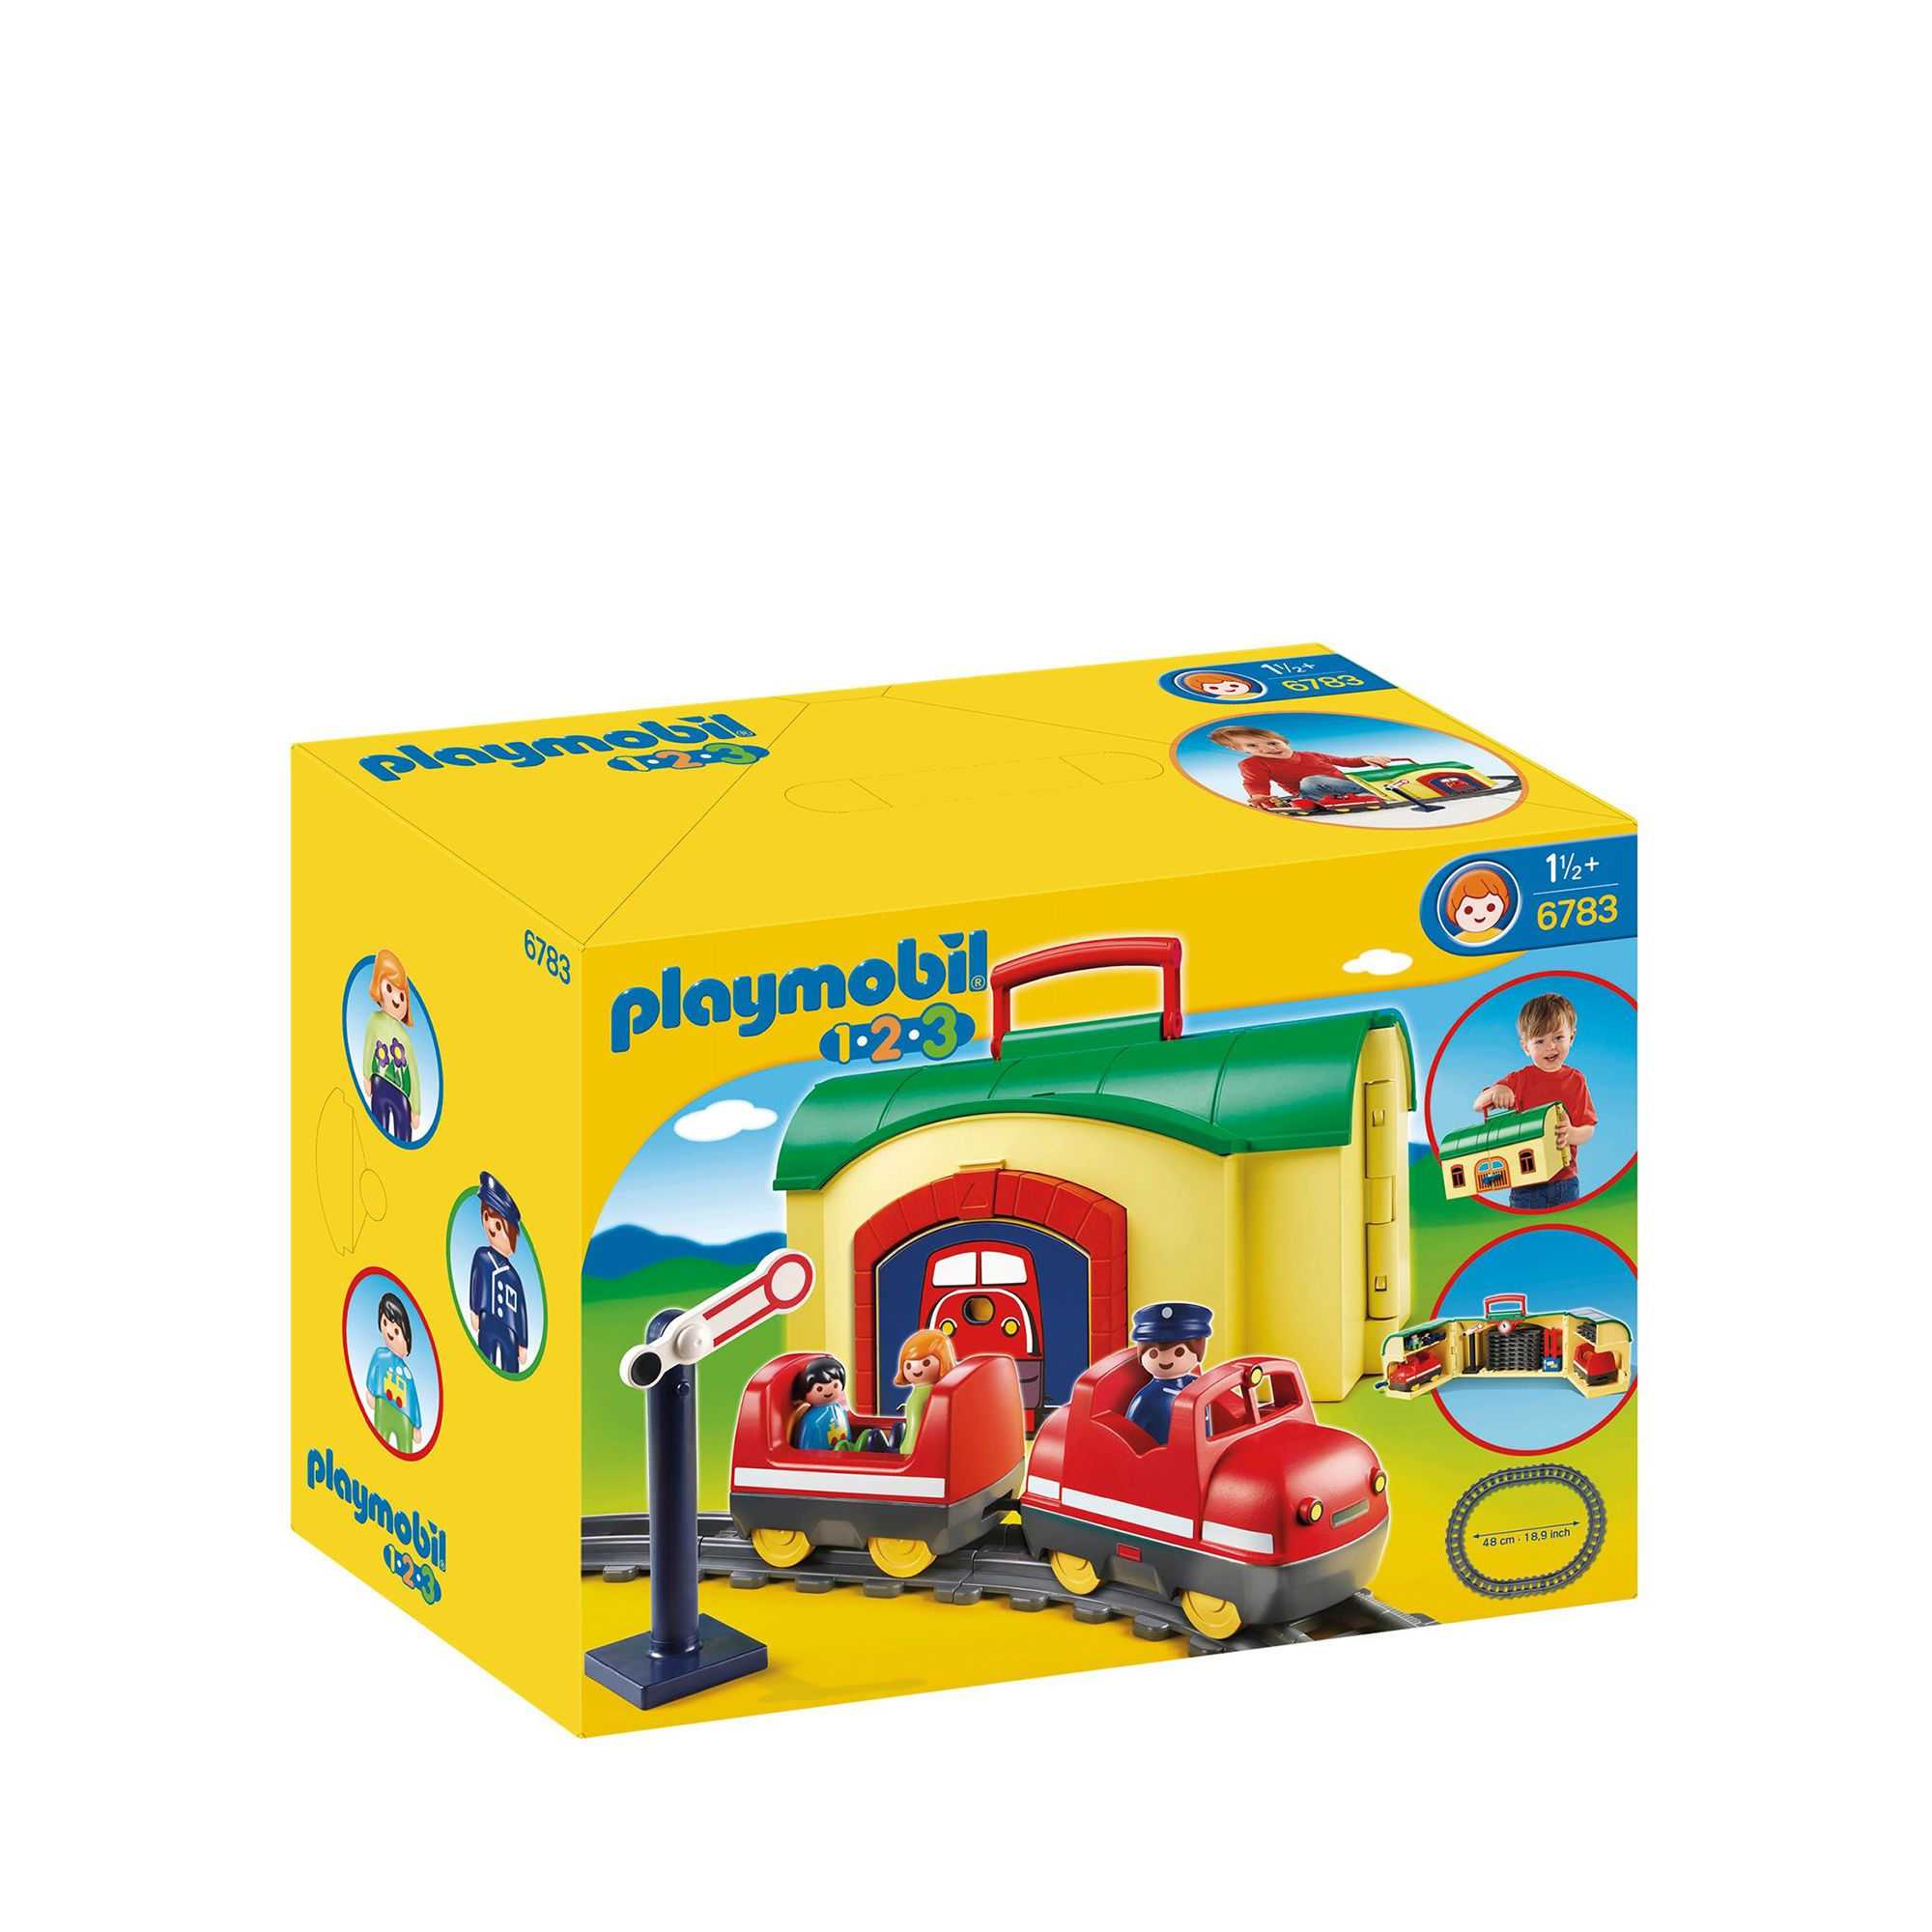 playmobil 123 krippe playmobil 4884 grosse krippe mit stall decotoys playmobil 123 my take. Black Bedroom Furniture Sets. Home Design Ideas